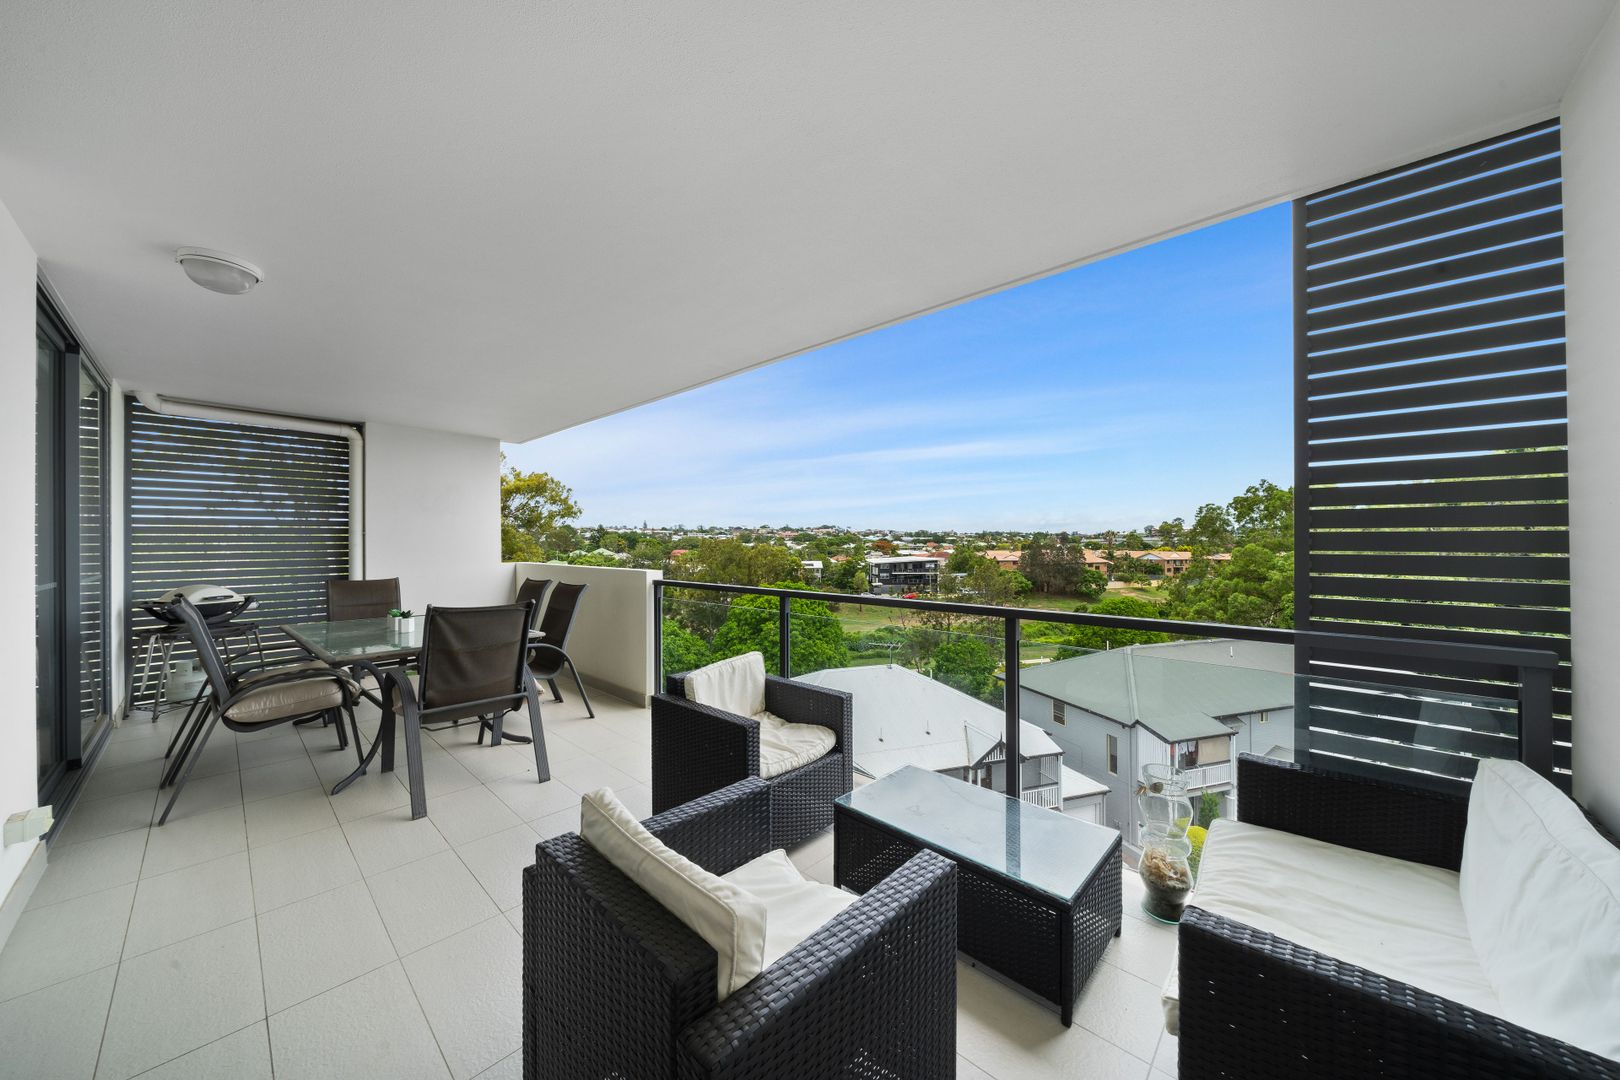 13/47 Norman Ave, Lutwyche QLD 4030, Image 0